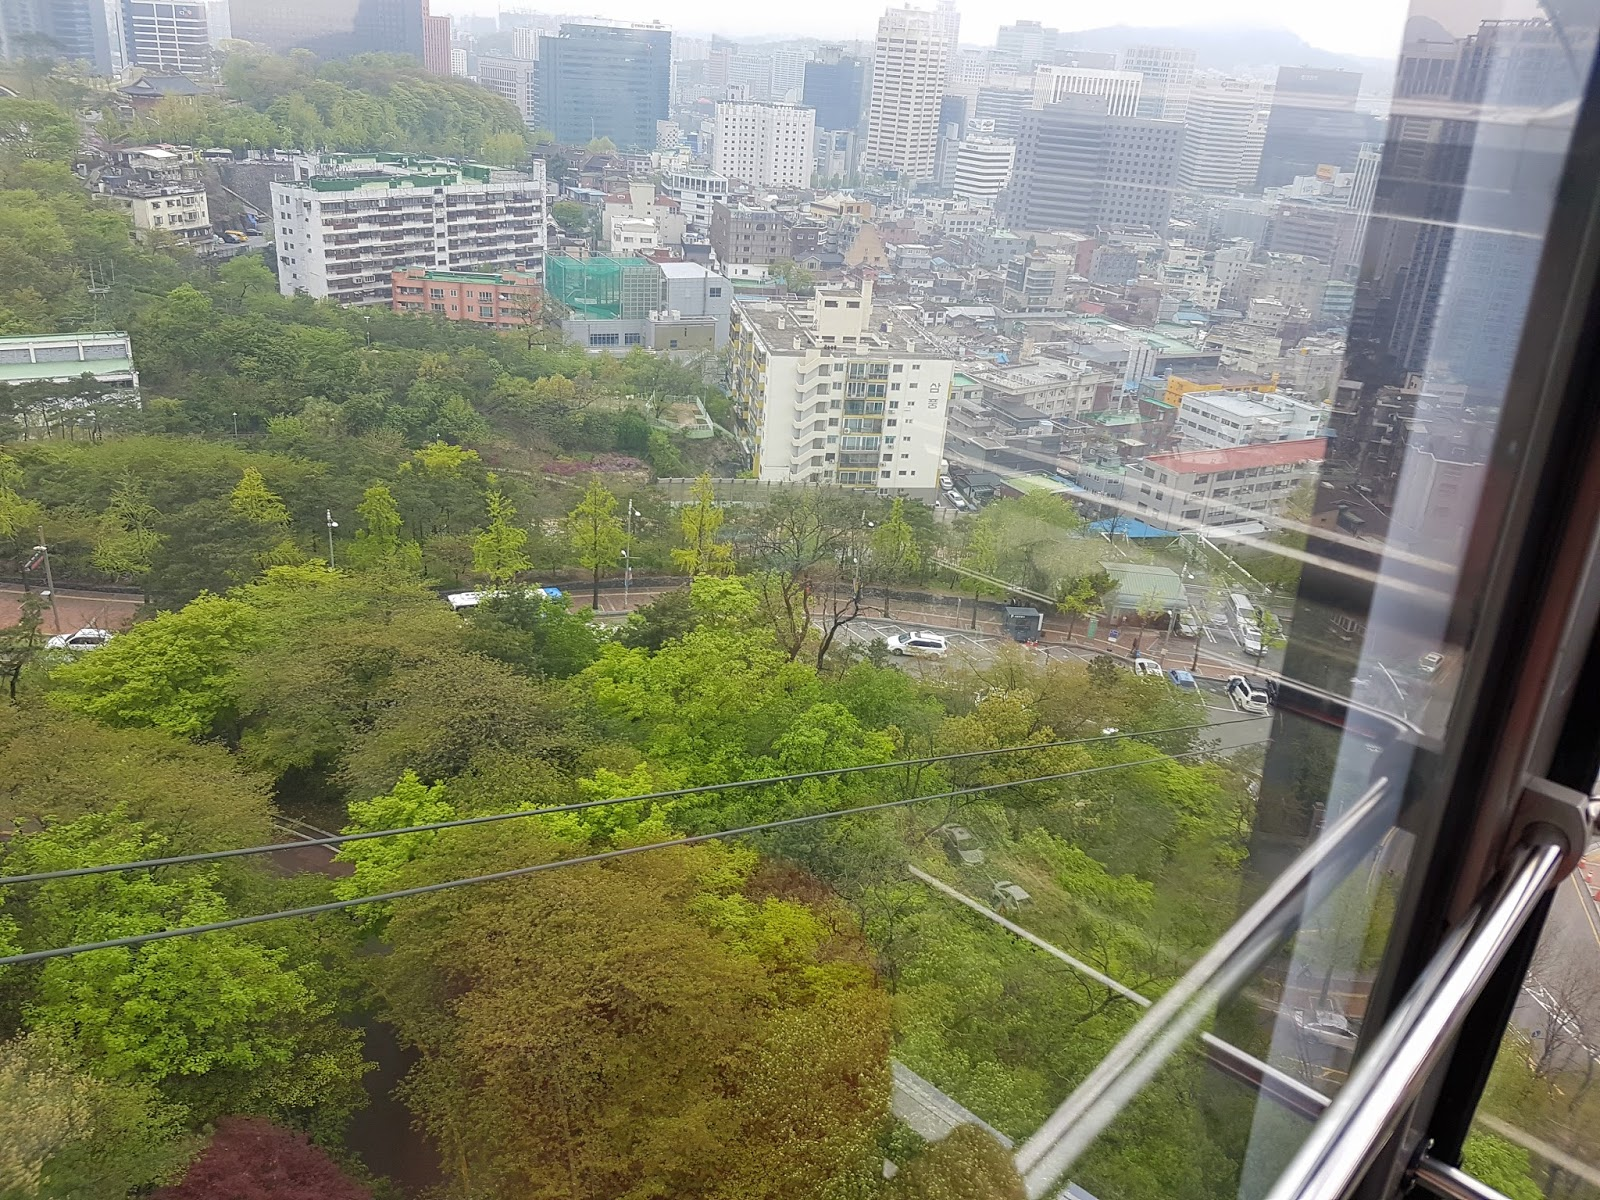 Namsan cable car - The Car Was Made Of Crystal Clear Glass And The View Was Spectacular It Was Just A Short Cable Car Ride So I Savored Every Moment Instead Of Taking Too